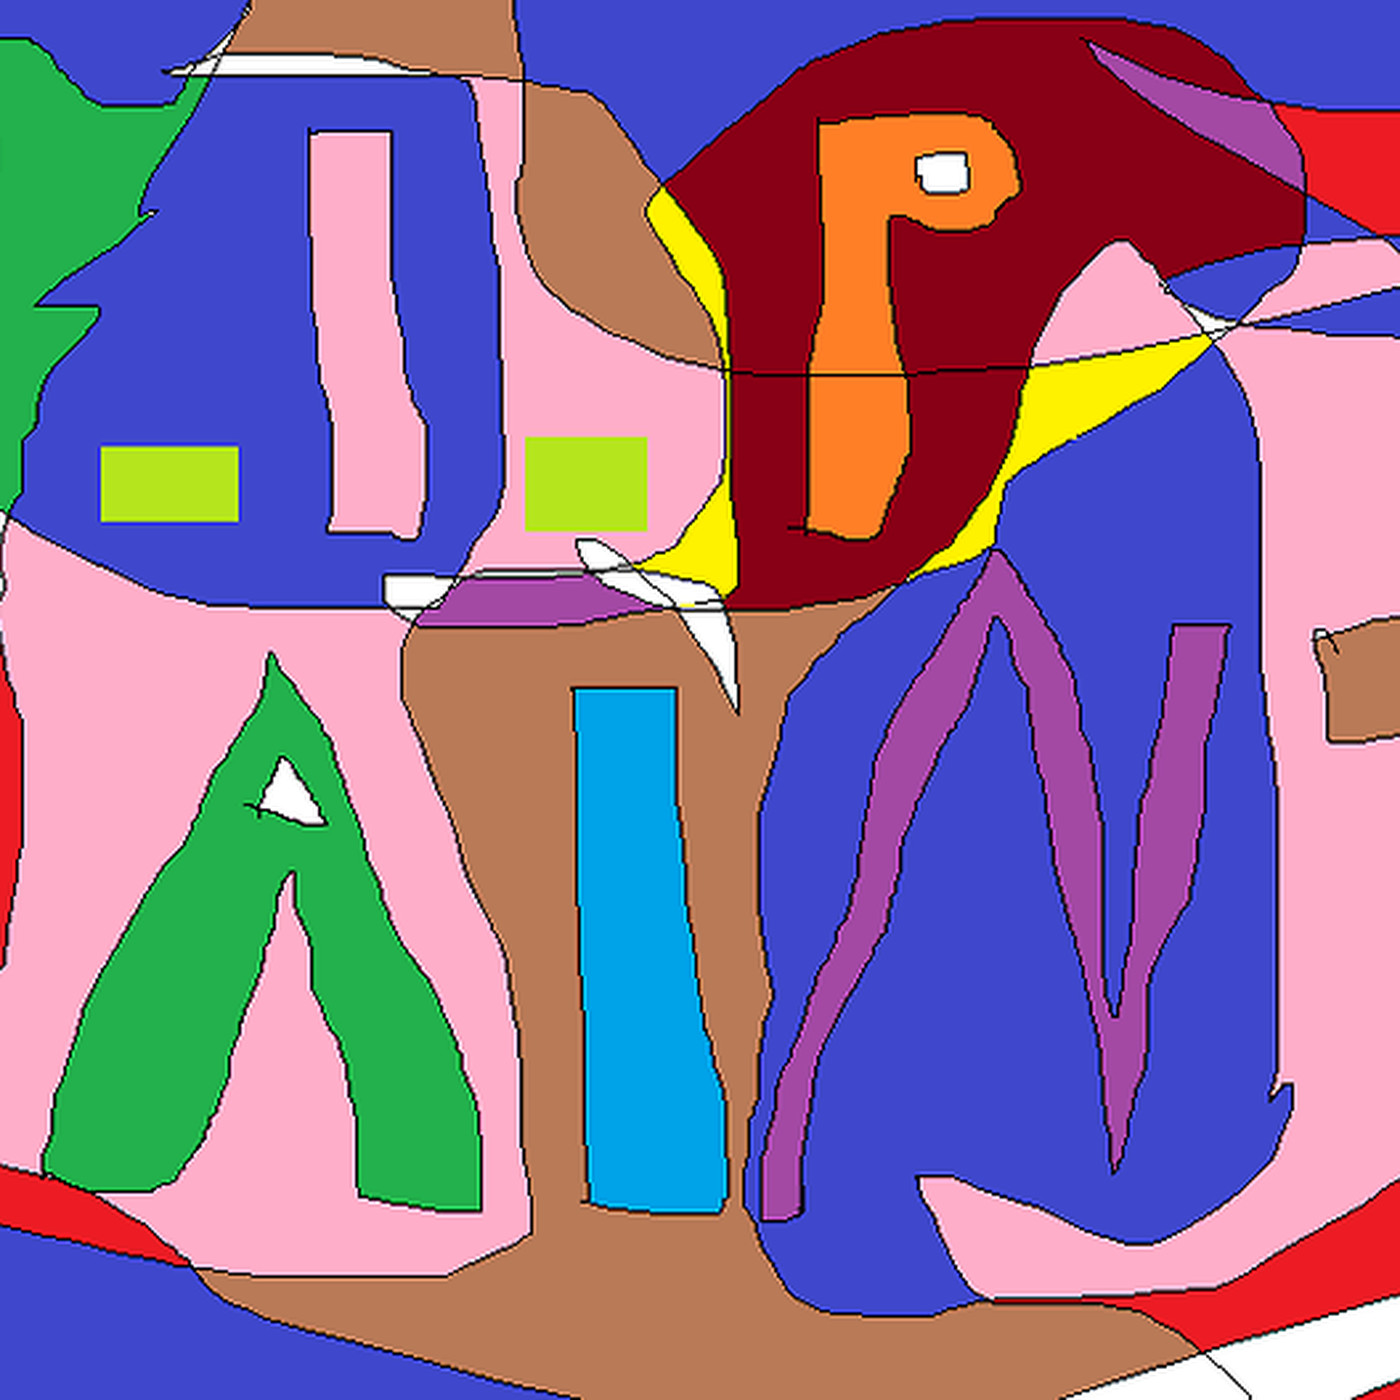 Microsoft retires its beloved Paint program, sending fans.